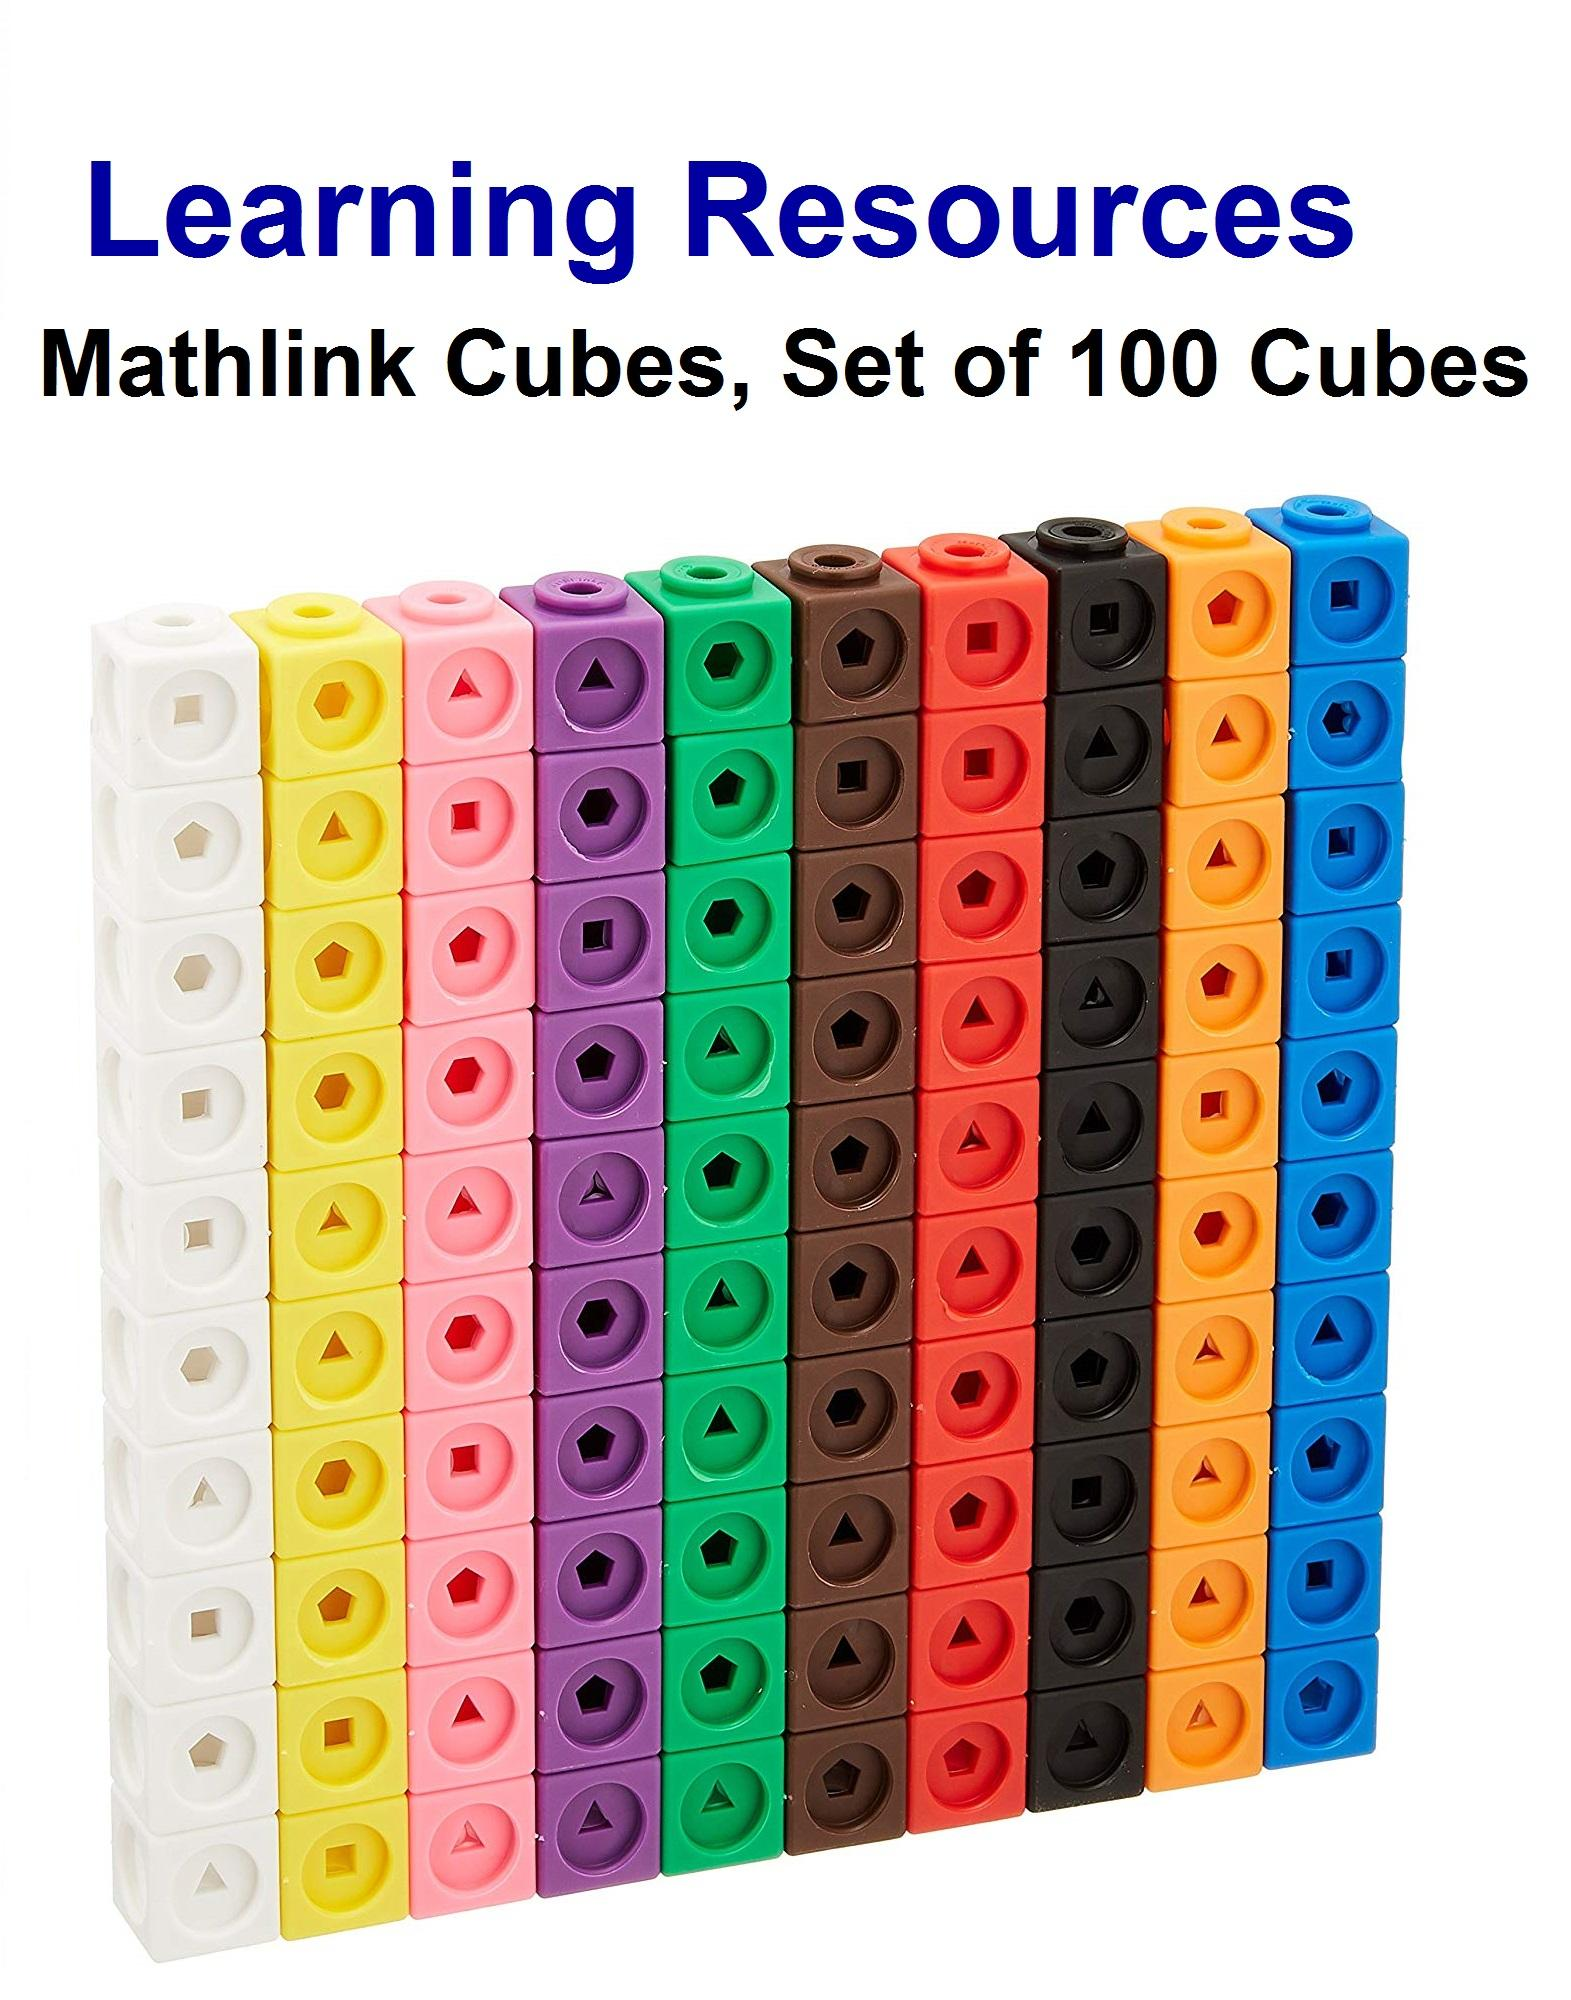 Learning Resources Mathlink Cubes, Educational Counting Toy, Set Of 100 Cubes By Mascotlicious.